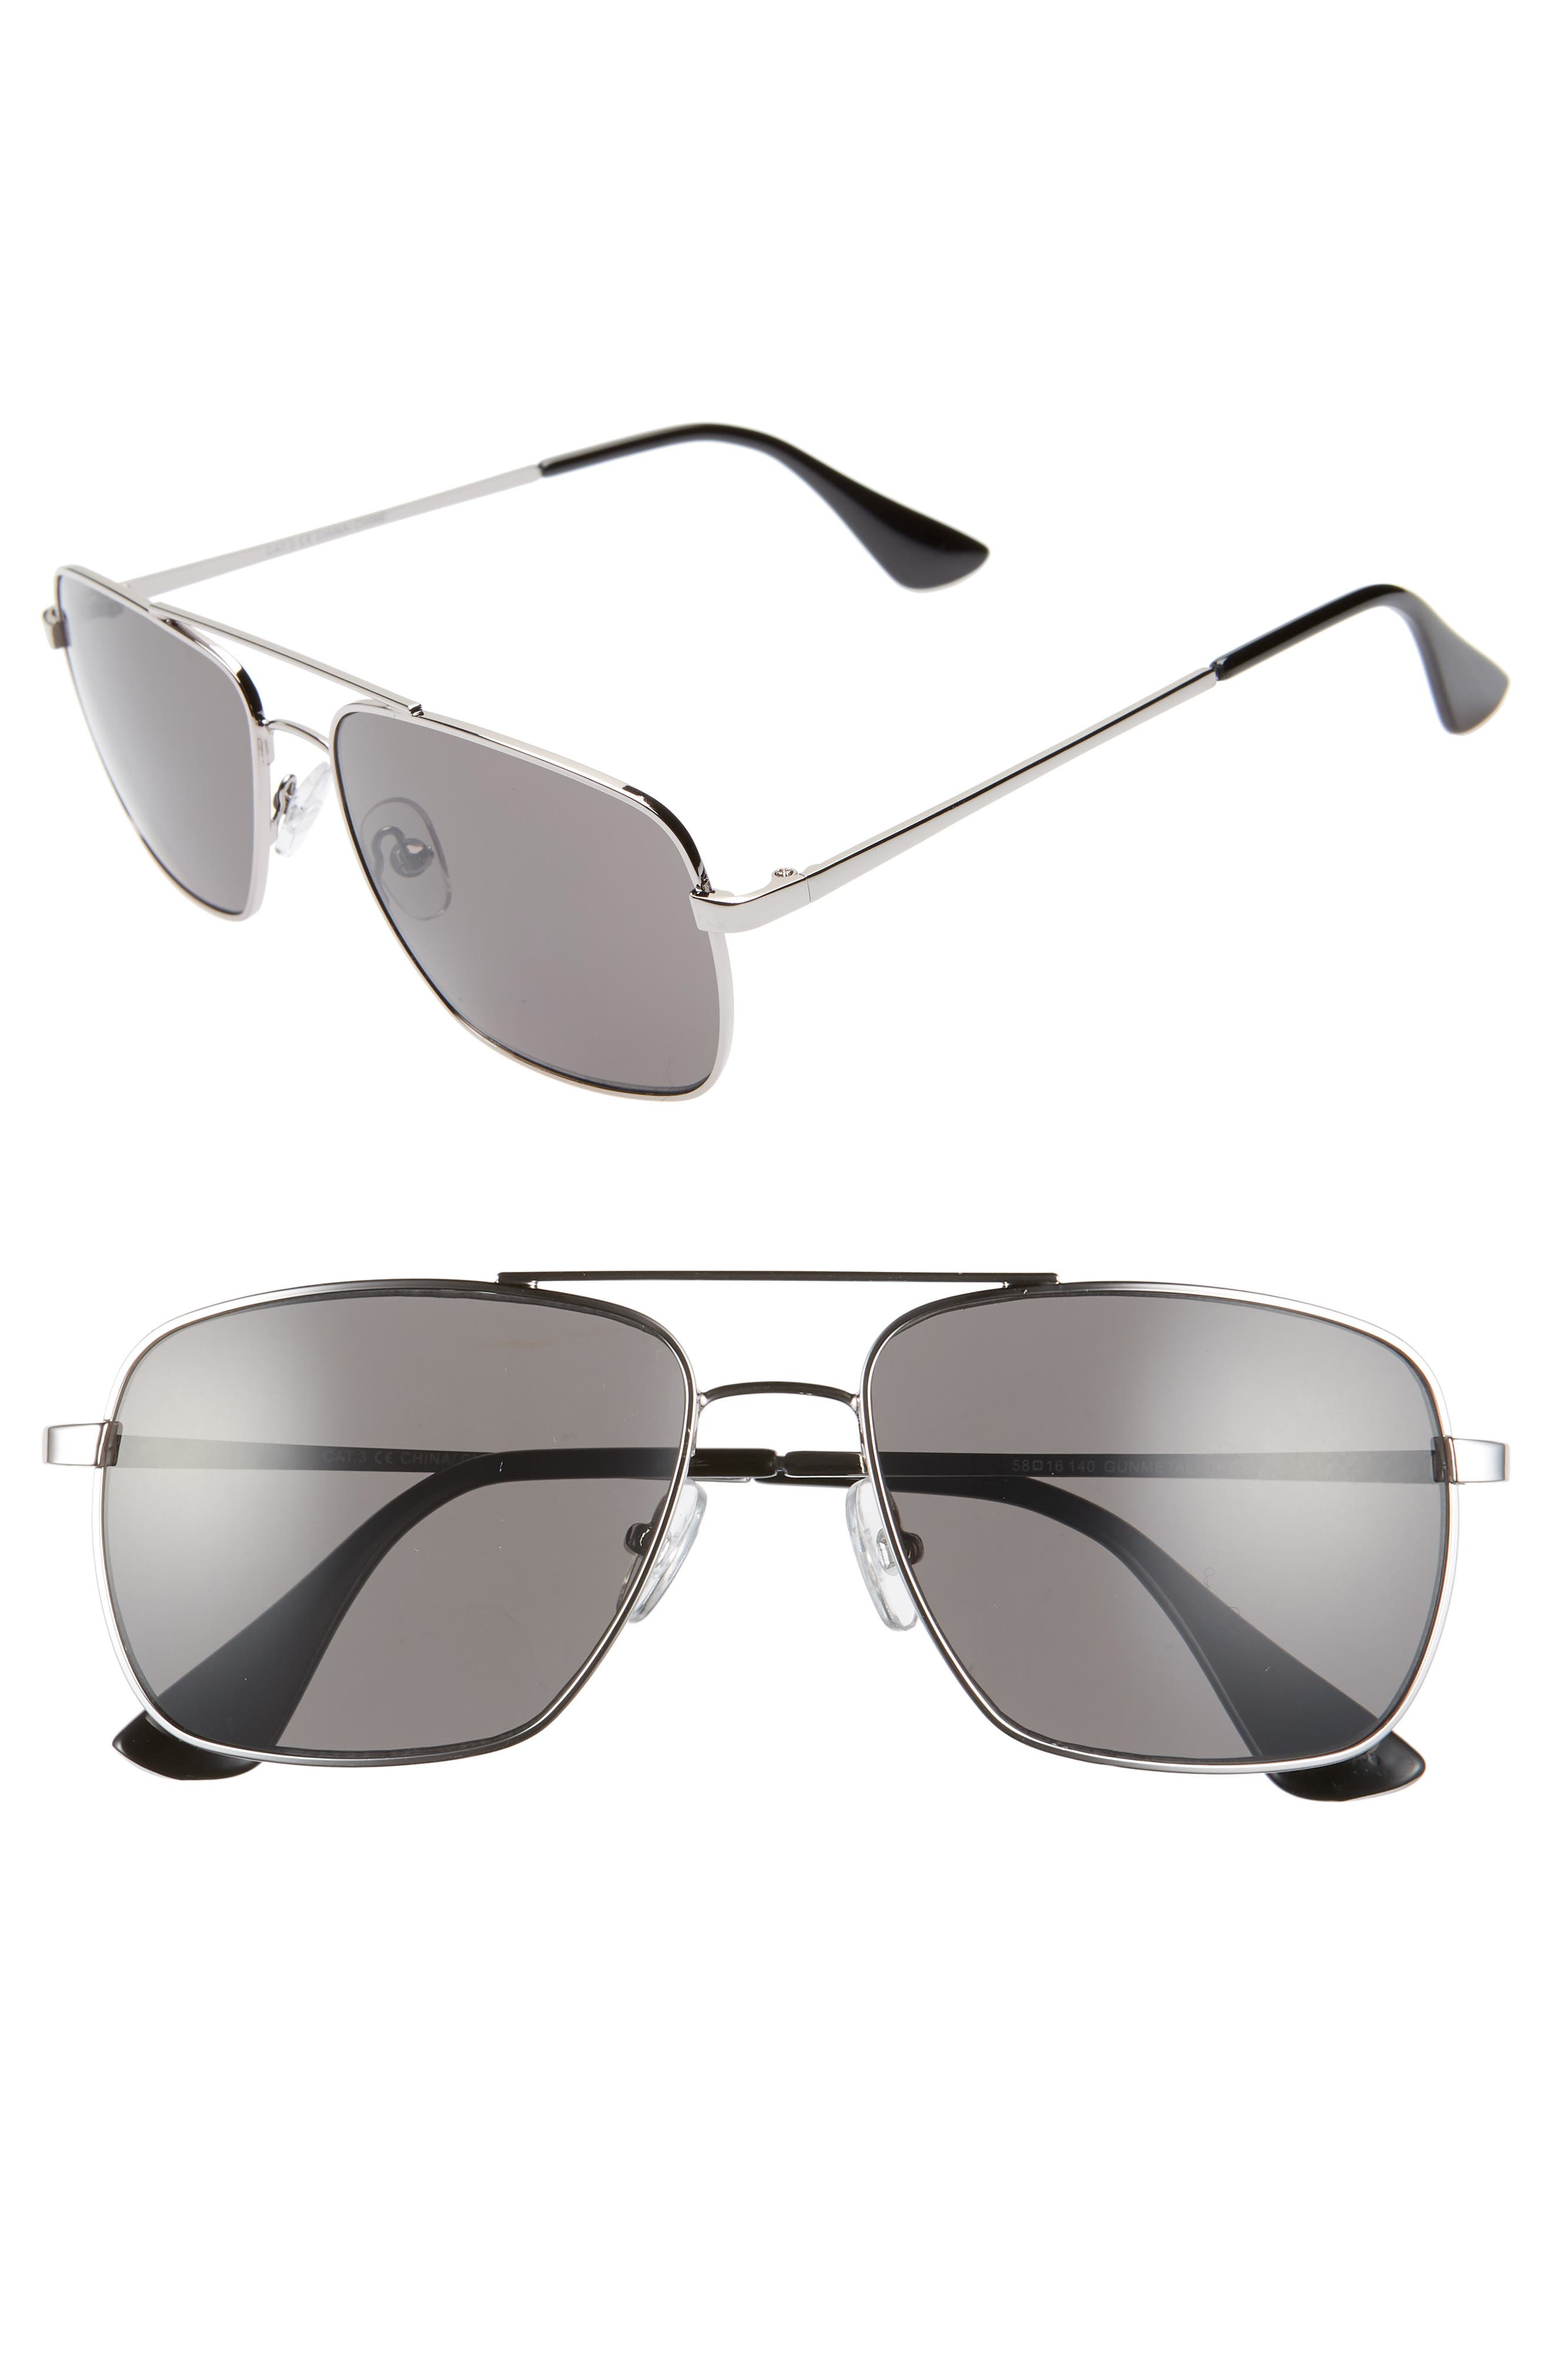 Taylor 58mm Aviator Sunglasses,                         Main,                         color, GUNMETAL/ GREY